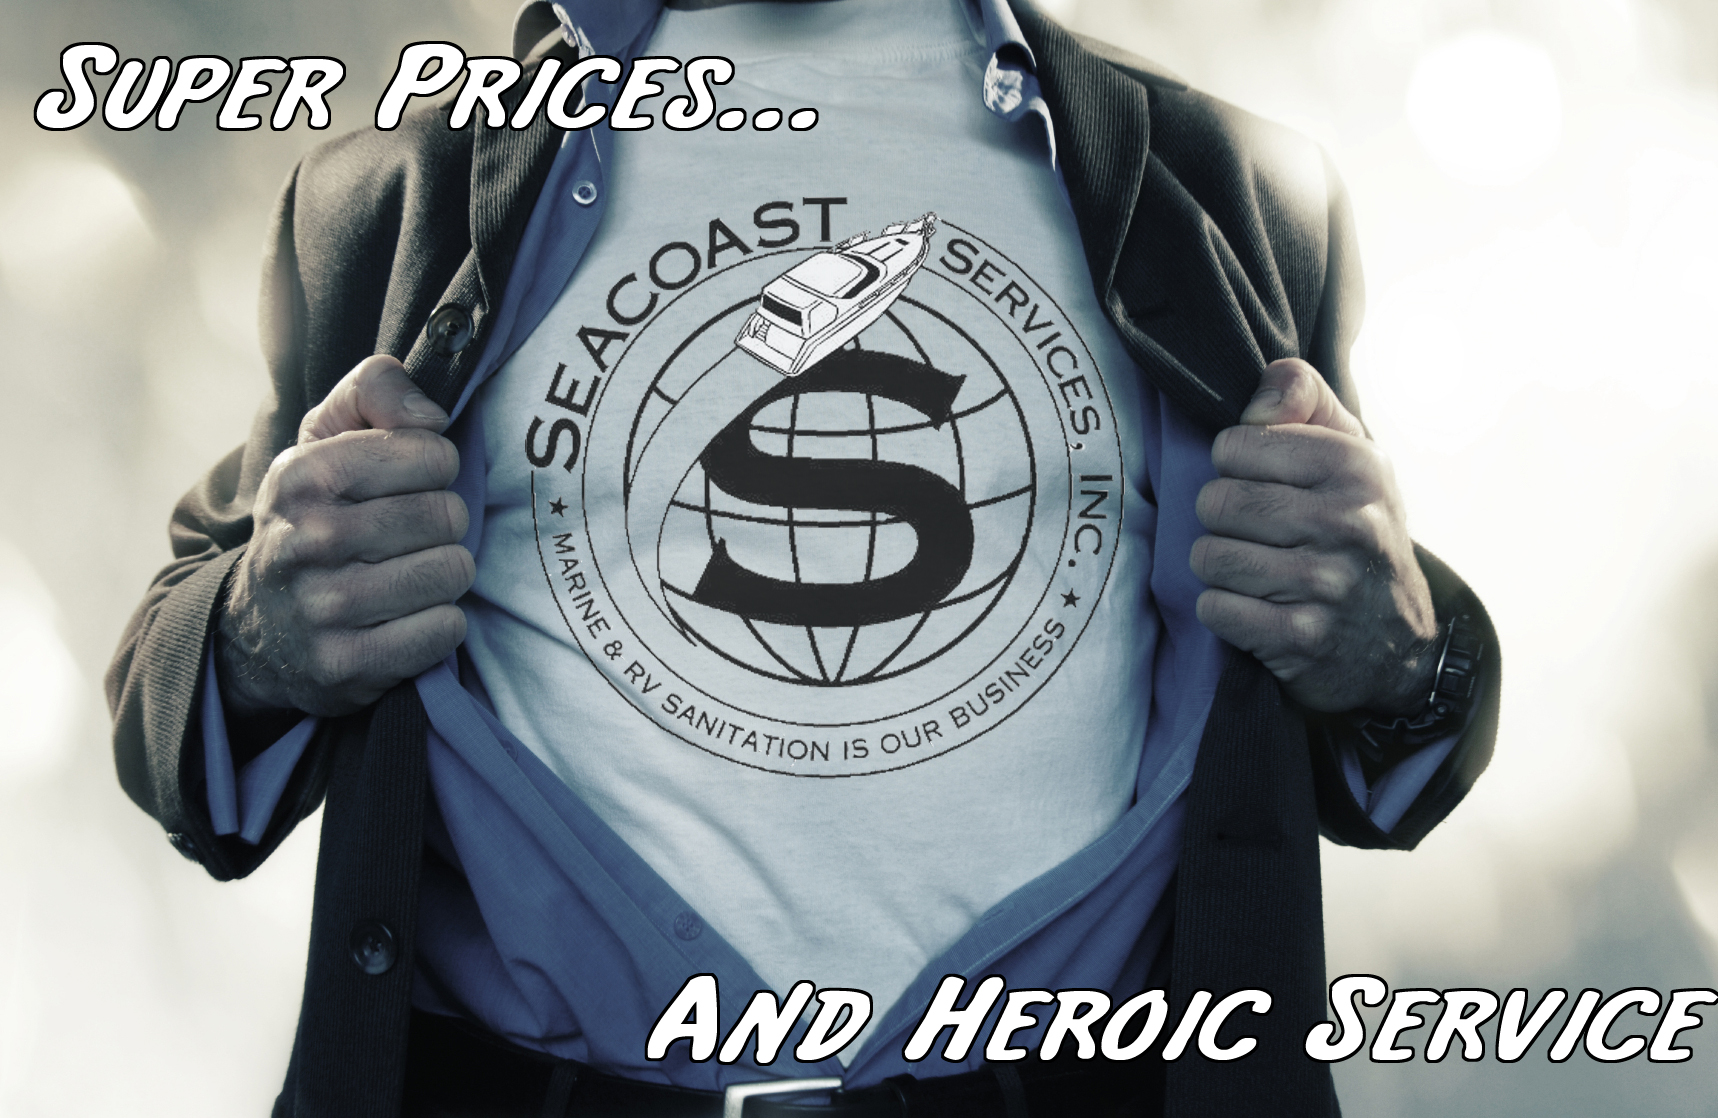 seacoast-superhero-copy.jpg